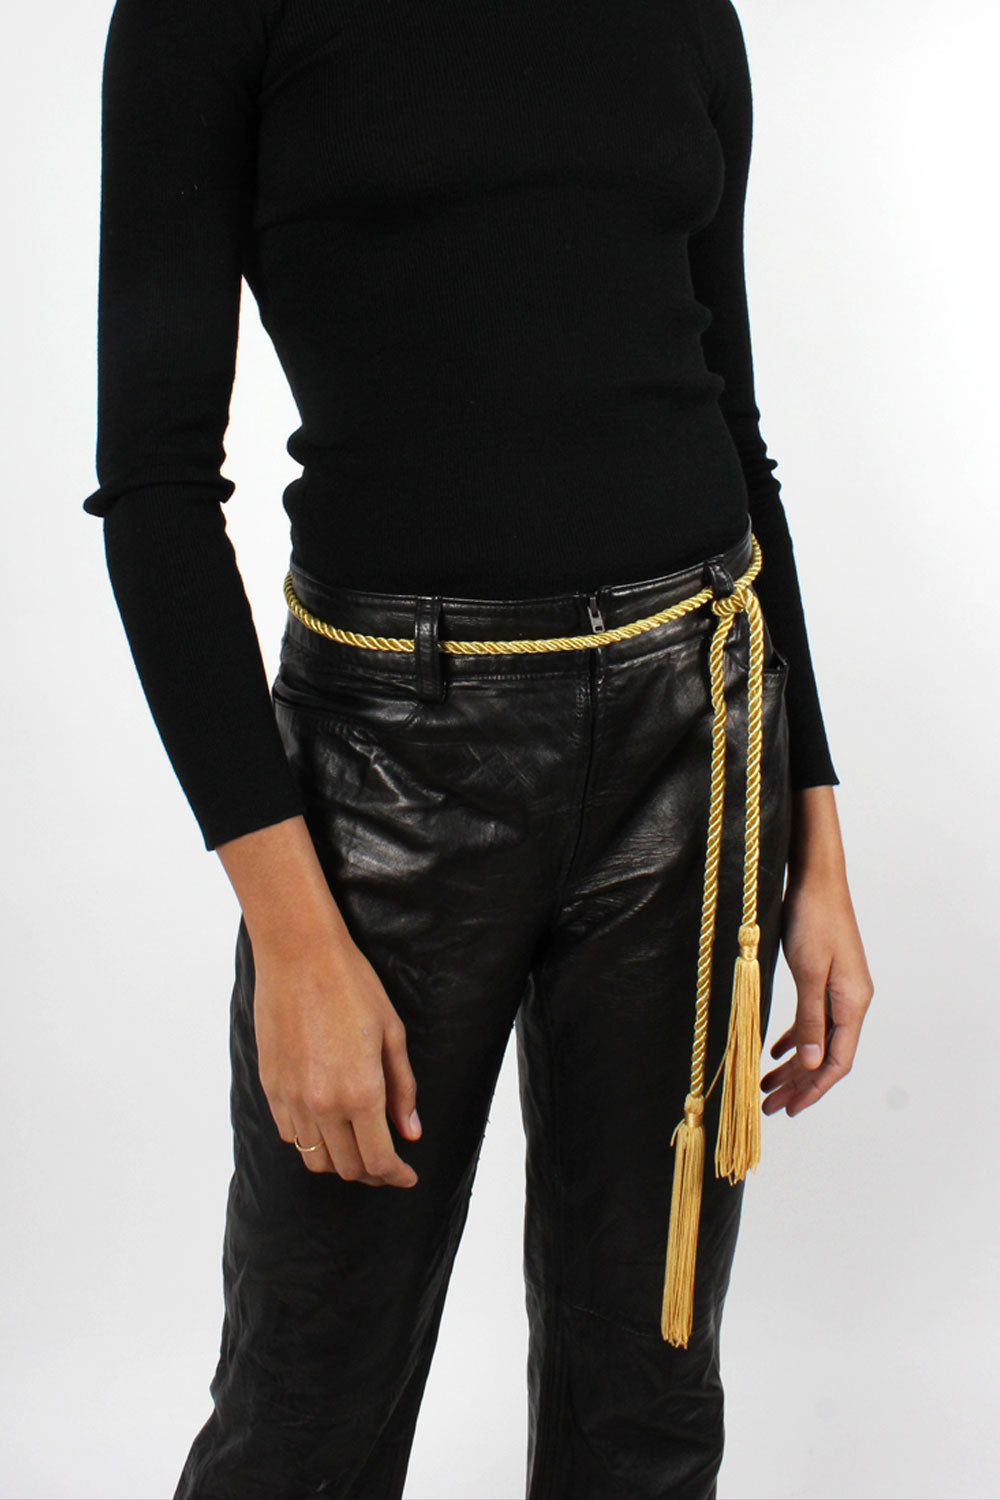 Black Leather Zip-Front Pants M